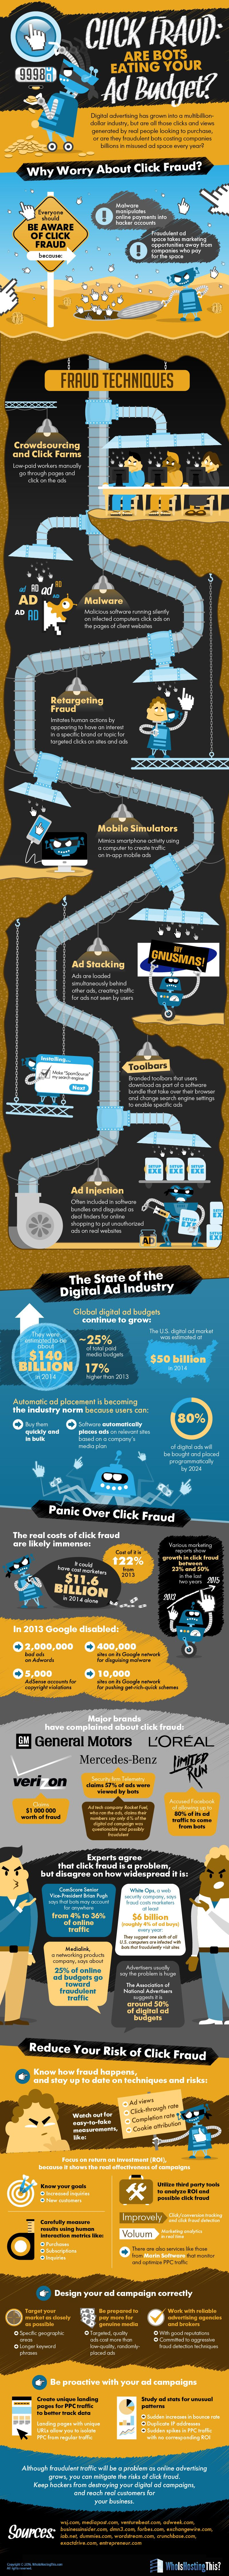 Click Fraud: Are Bots Eating Your Ad Budget? #Infographic